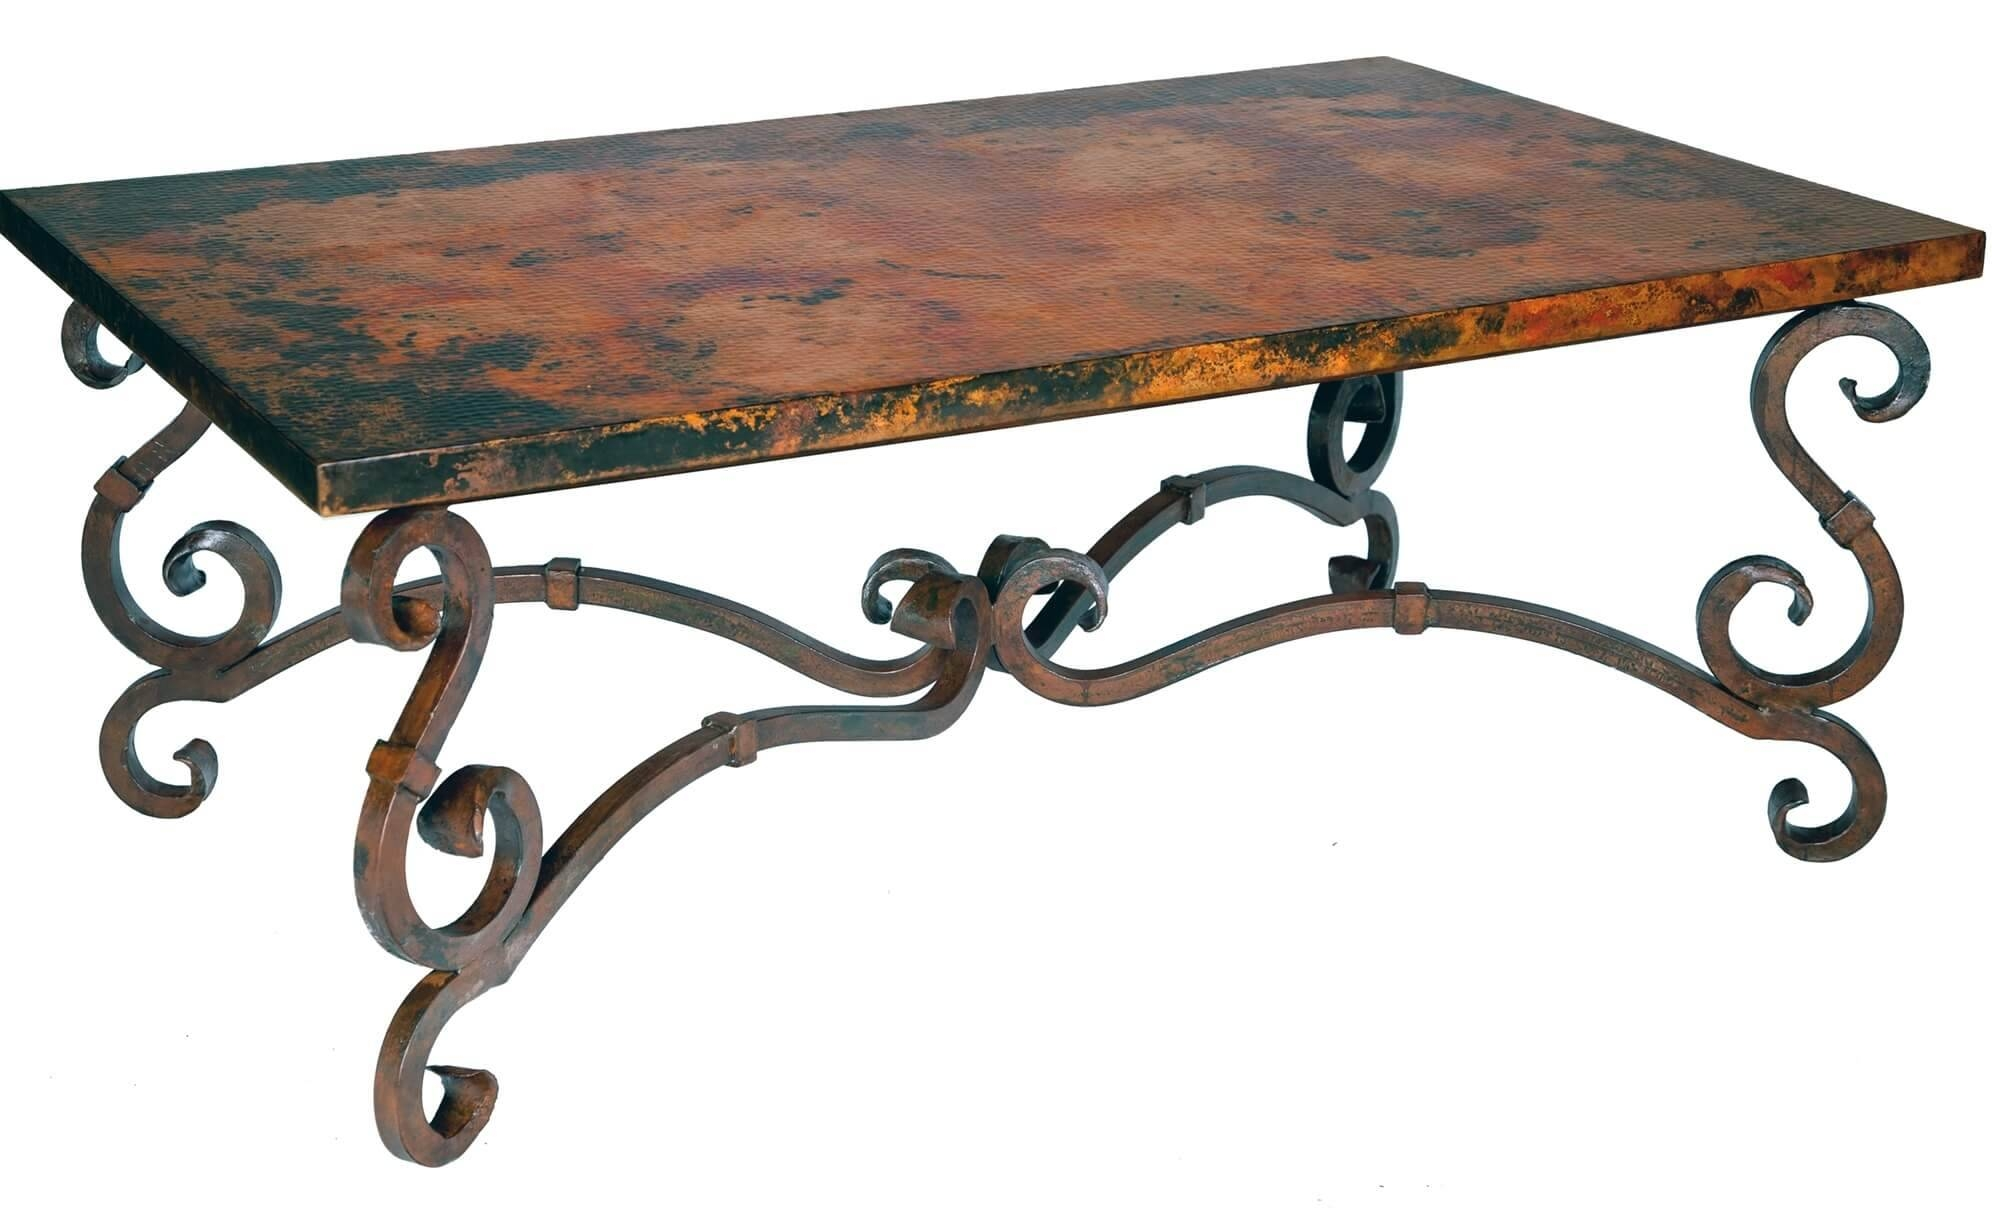 Iron Coffee Tables for Wrought Iron Coffee Tables (Image 8 of 30)